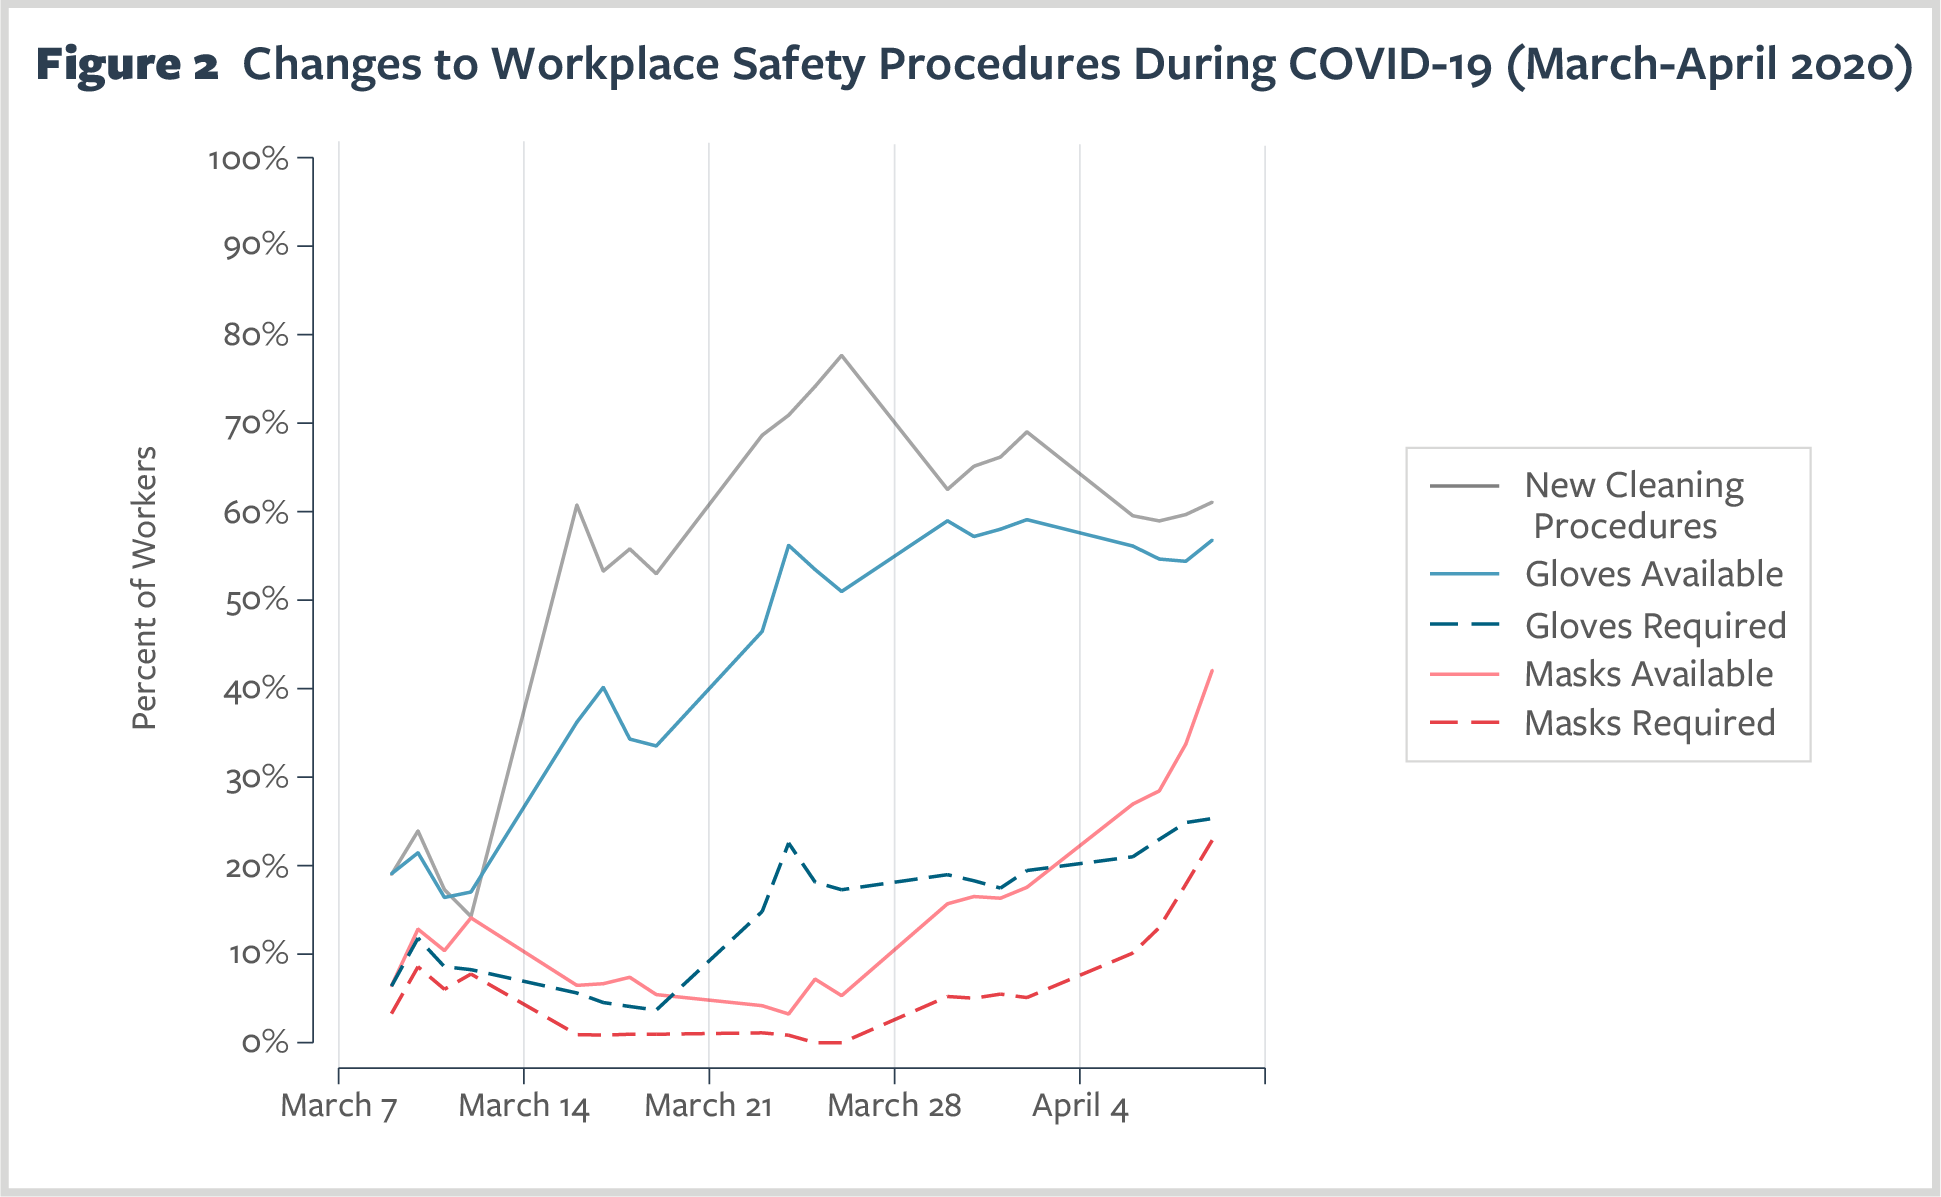 Figure 2. Changes to Workplace Safety Procedures During COVID-19 (March-April 2020)